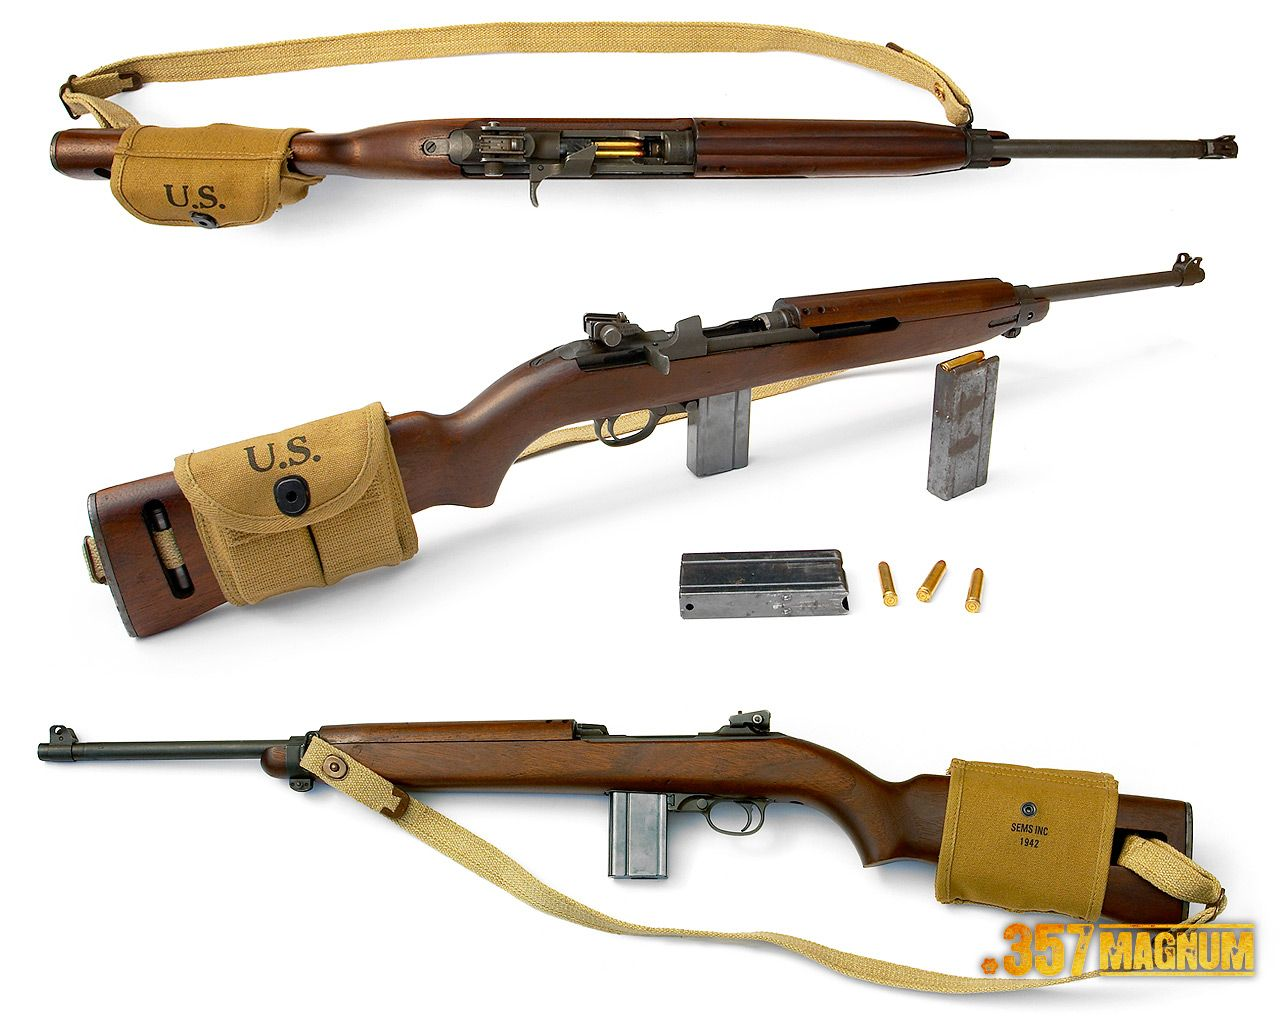 M1: M1 Carbine. I've Got One Of These Too. I've Got All This